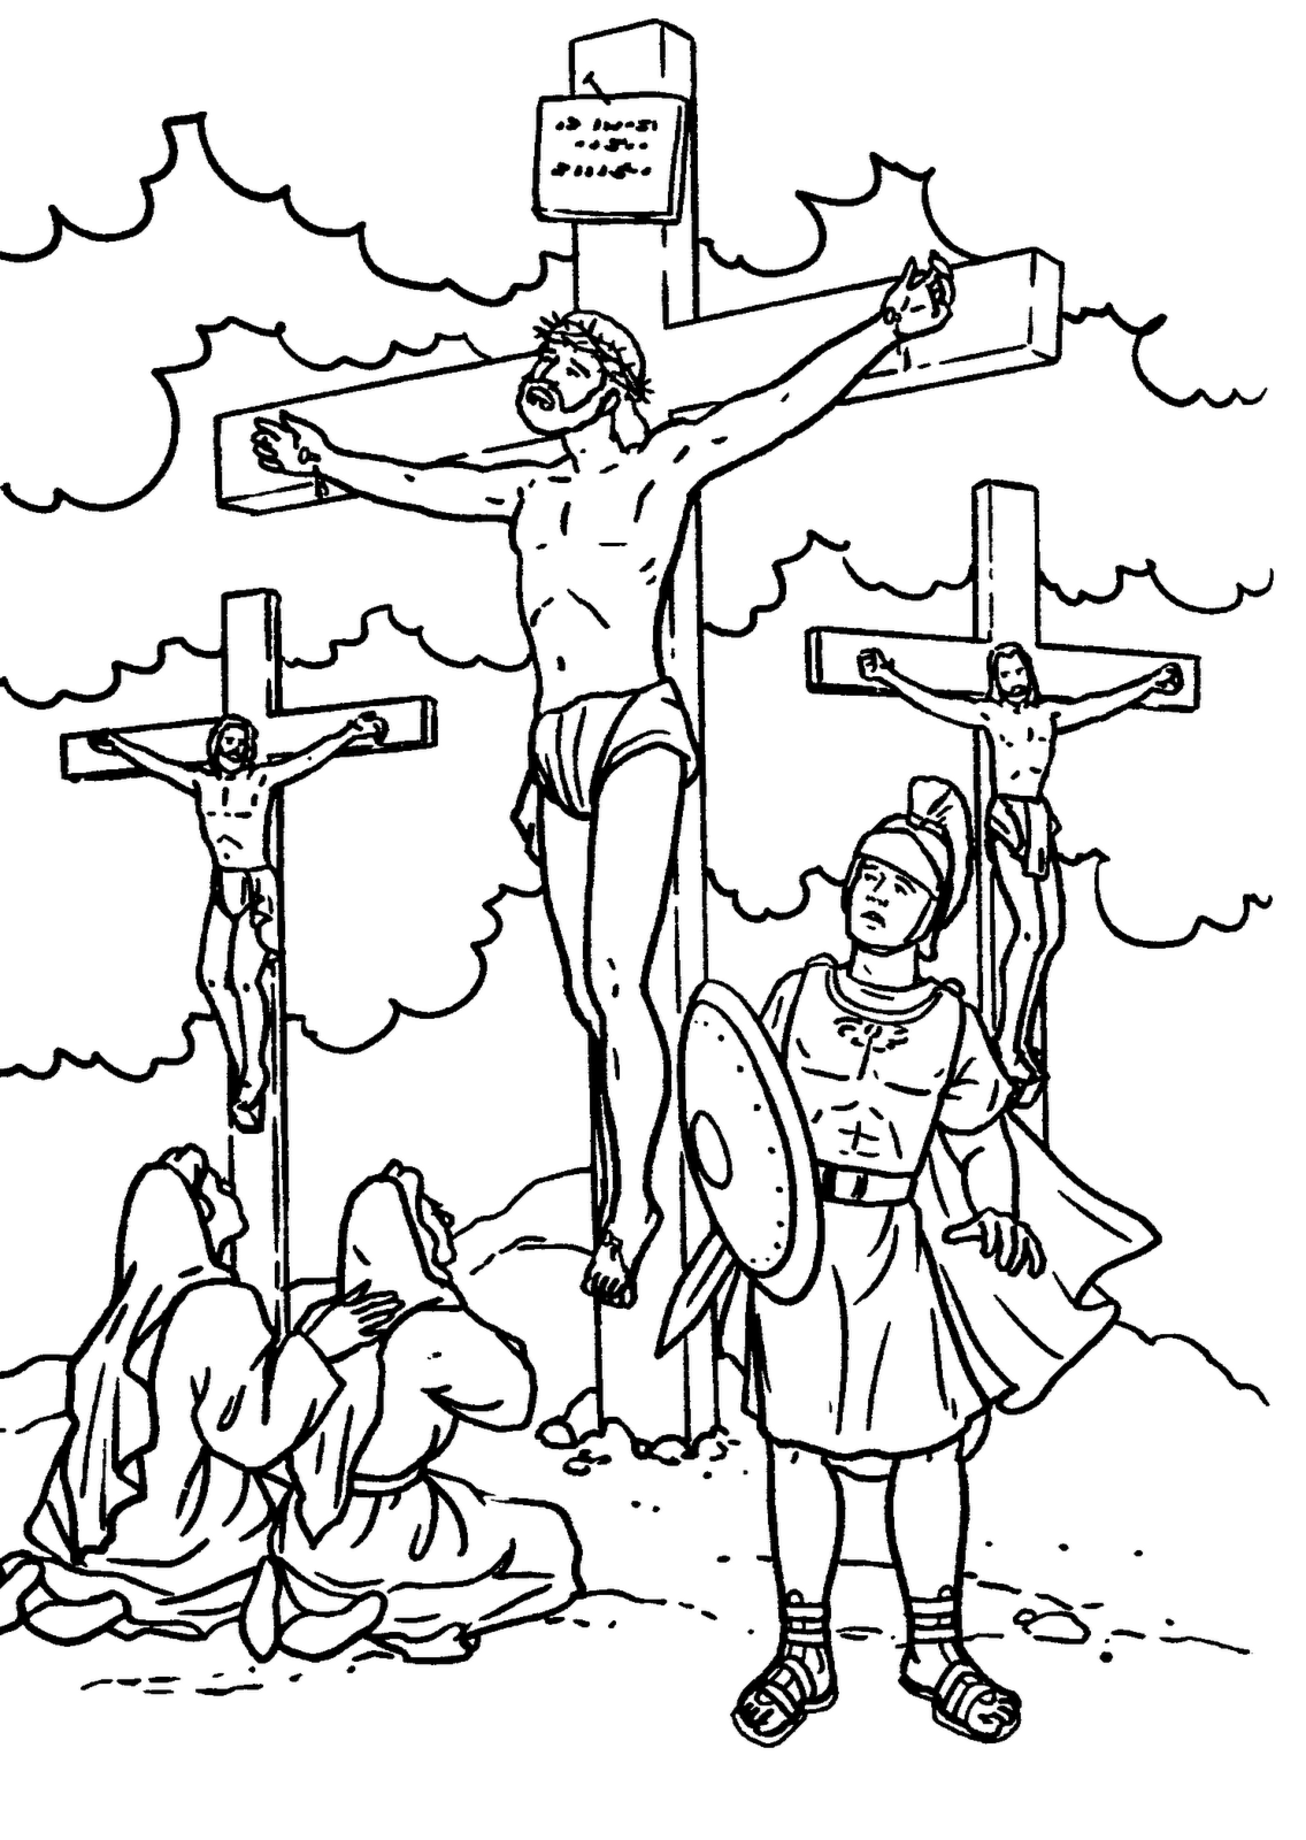 Printable coloring pages religious items - Find This Pin And More On H Sv Thoz Christian Free Bible Coloring Pages